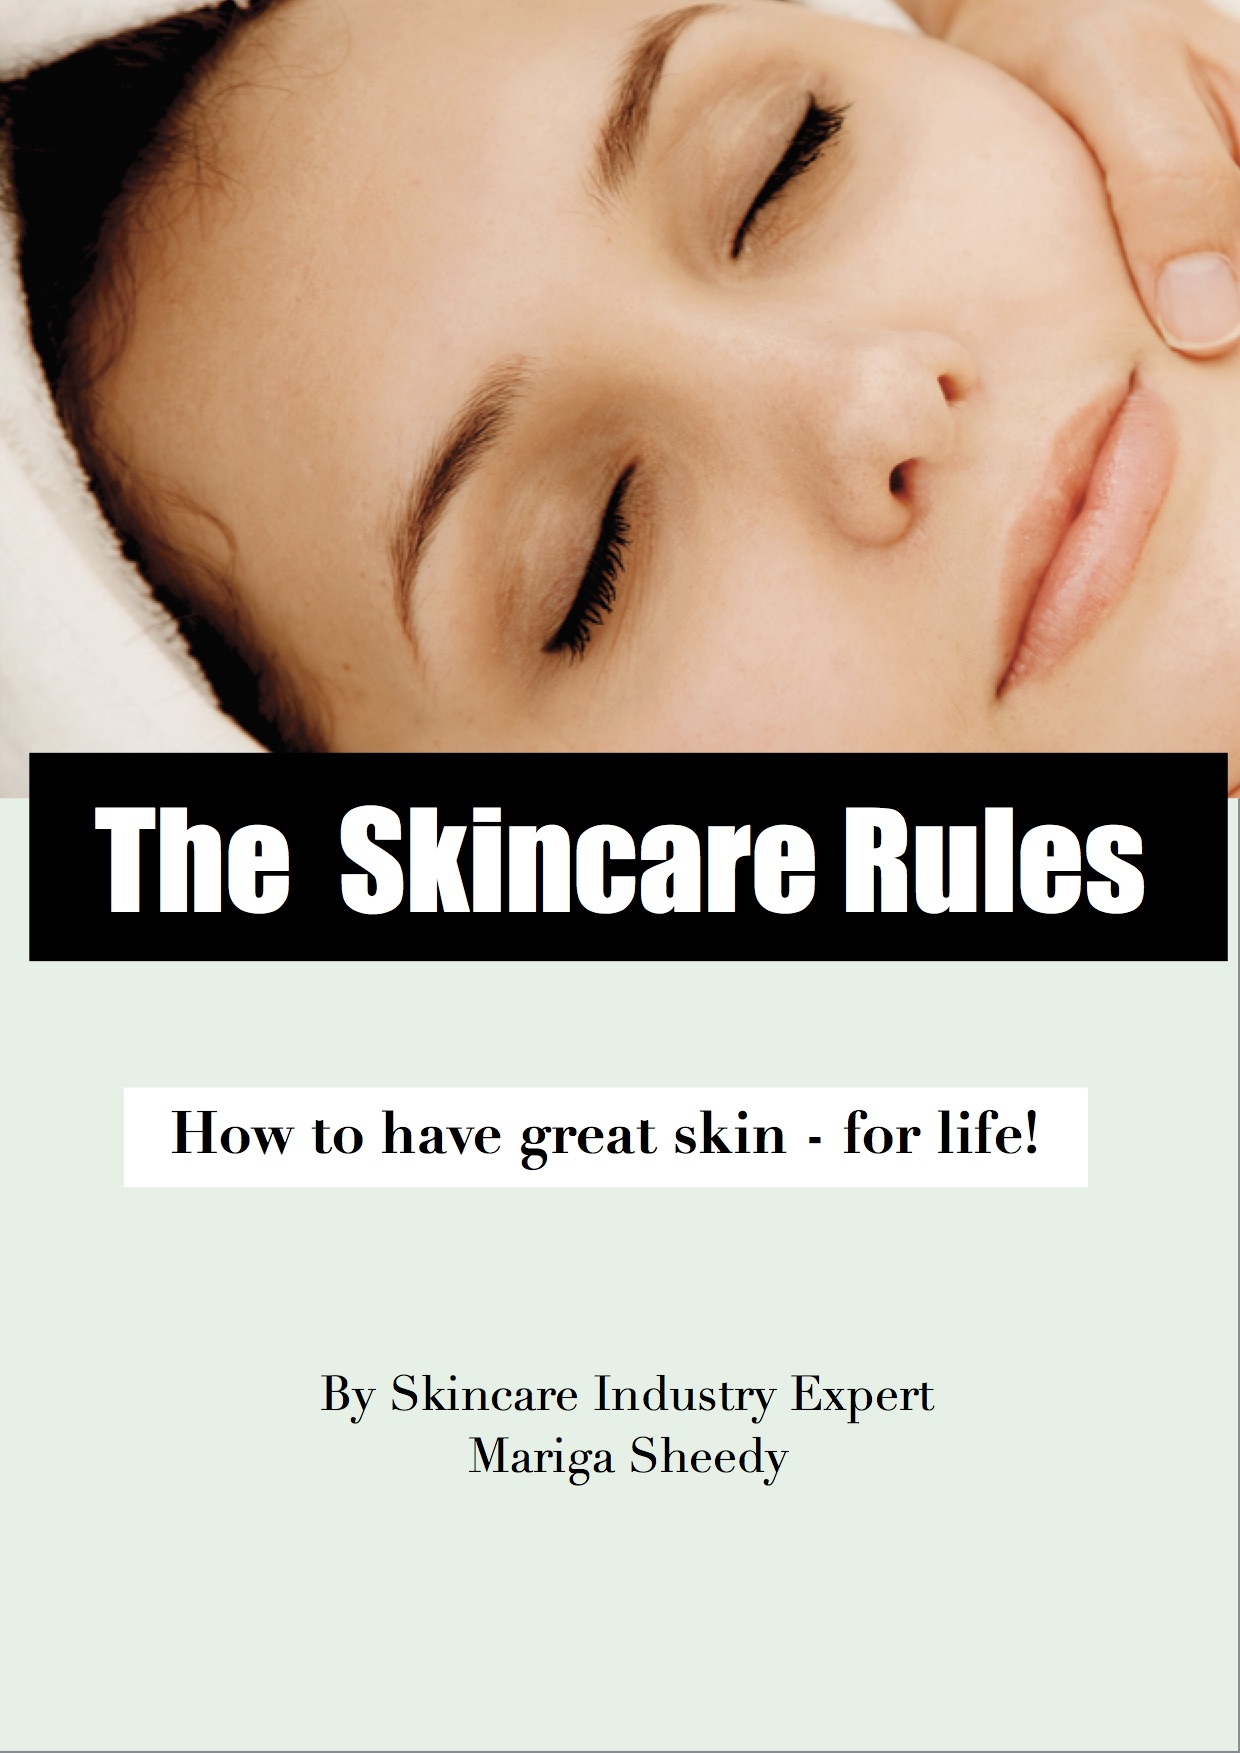 http://www.amazon.co.uk/Skincare-Rules-have-great-skin-ebook/dp/B01CAHUSS4/ref=sr_1_1?ie=UTF8&qid=1456916675&sr=8-1&keywords=mariga+sheedy